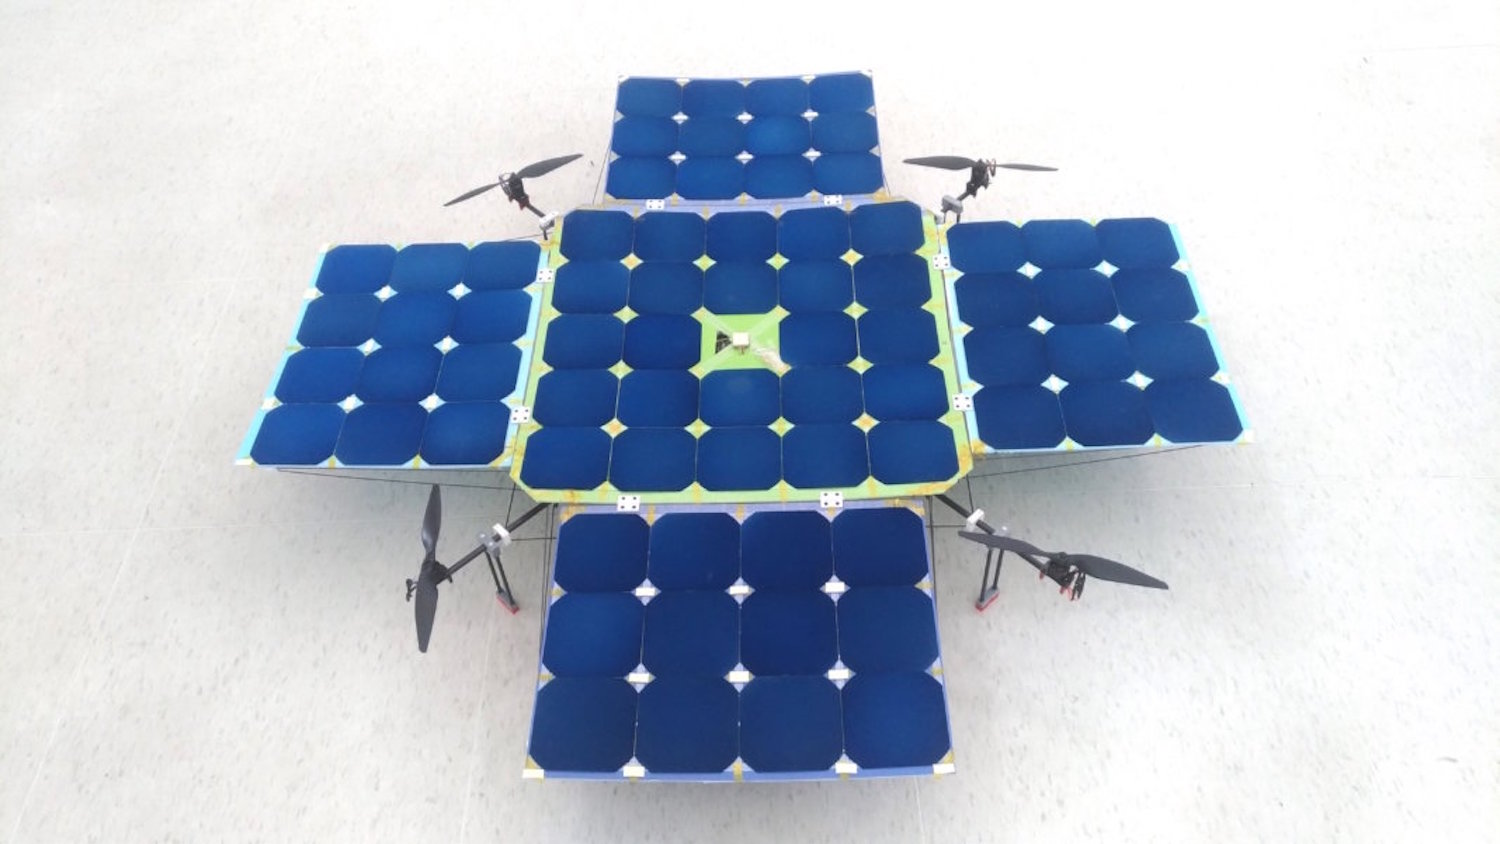 Solardrone A Drone With Solar Panels For Increased